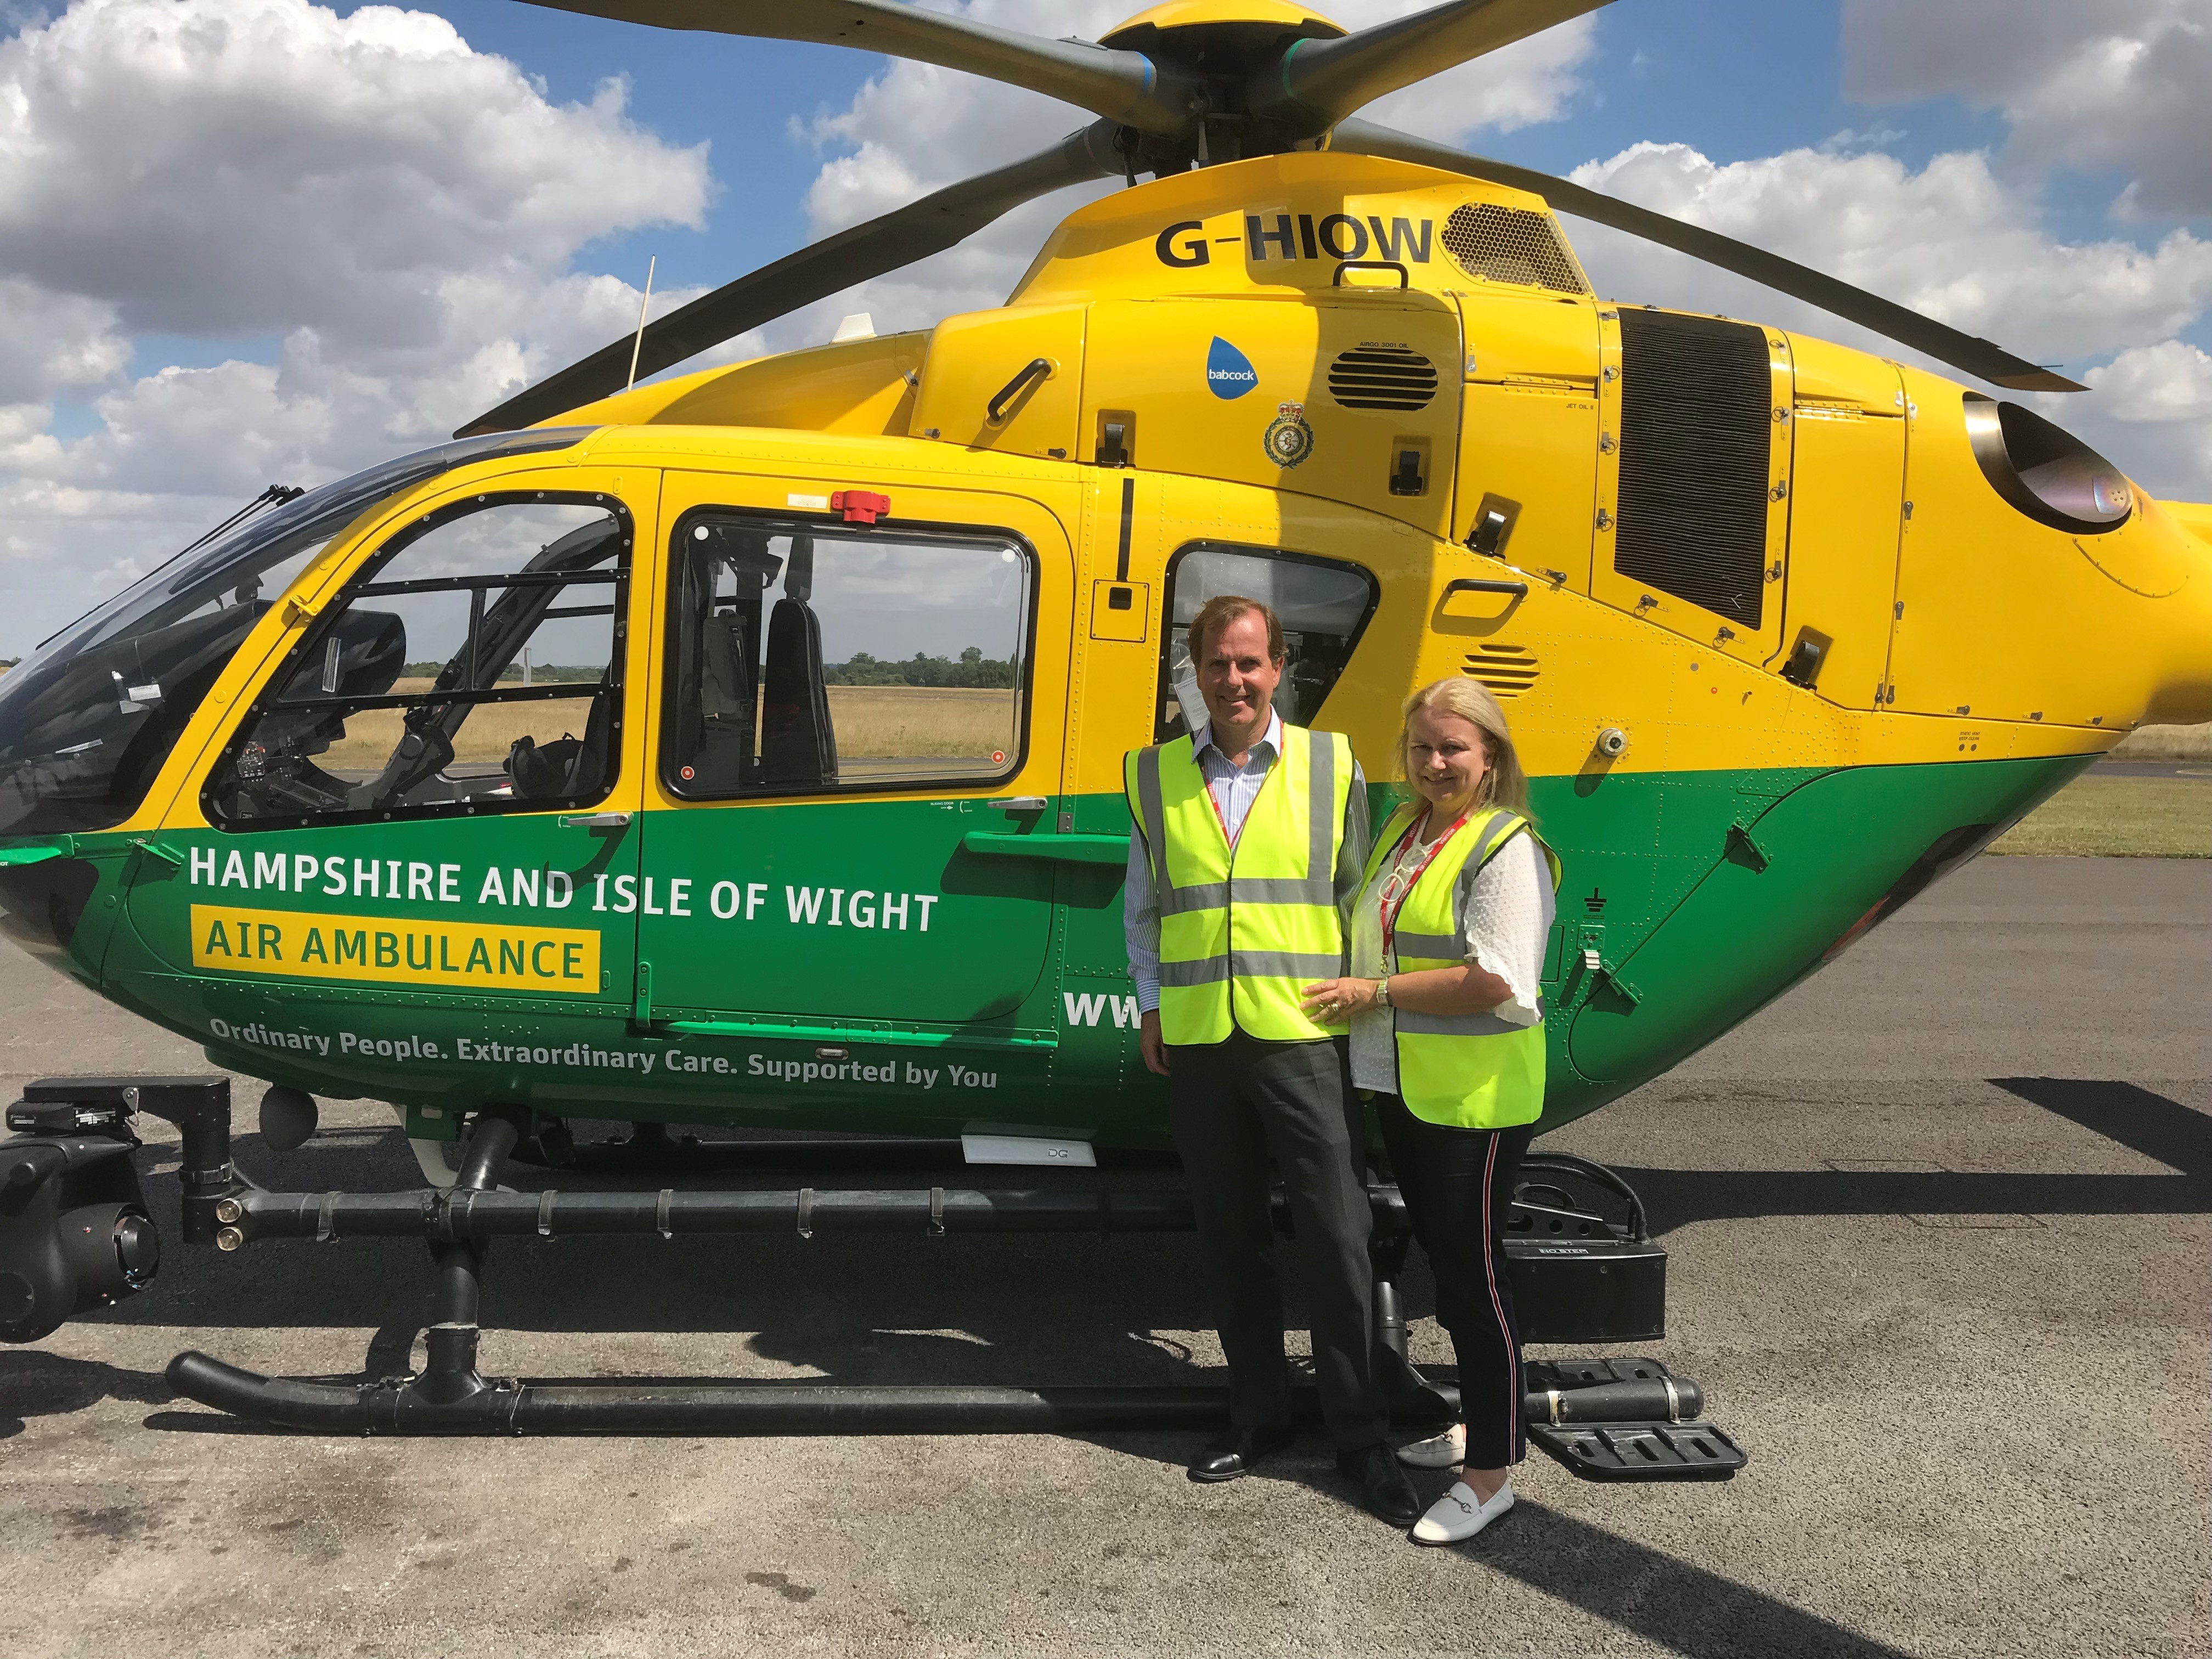 Visit to the Hampshire and Isle of Wight Air Ambulance HQ